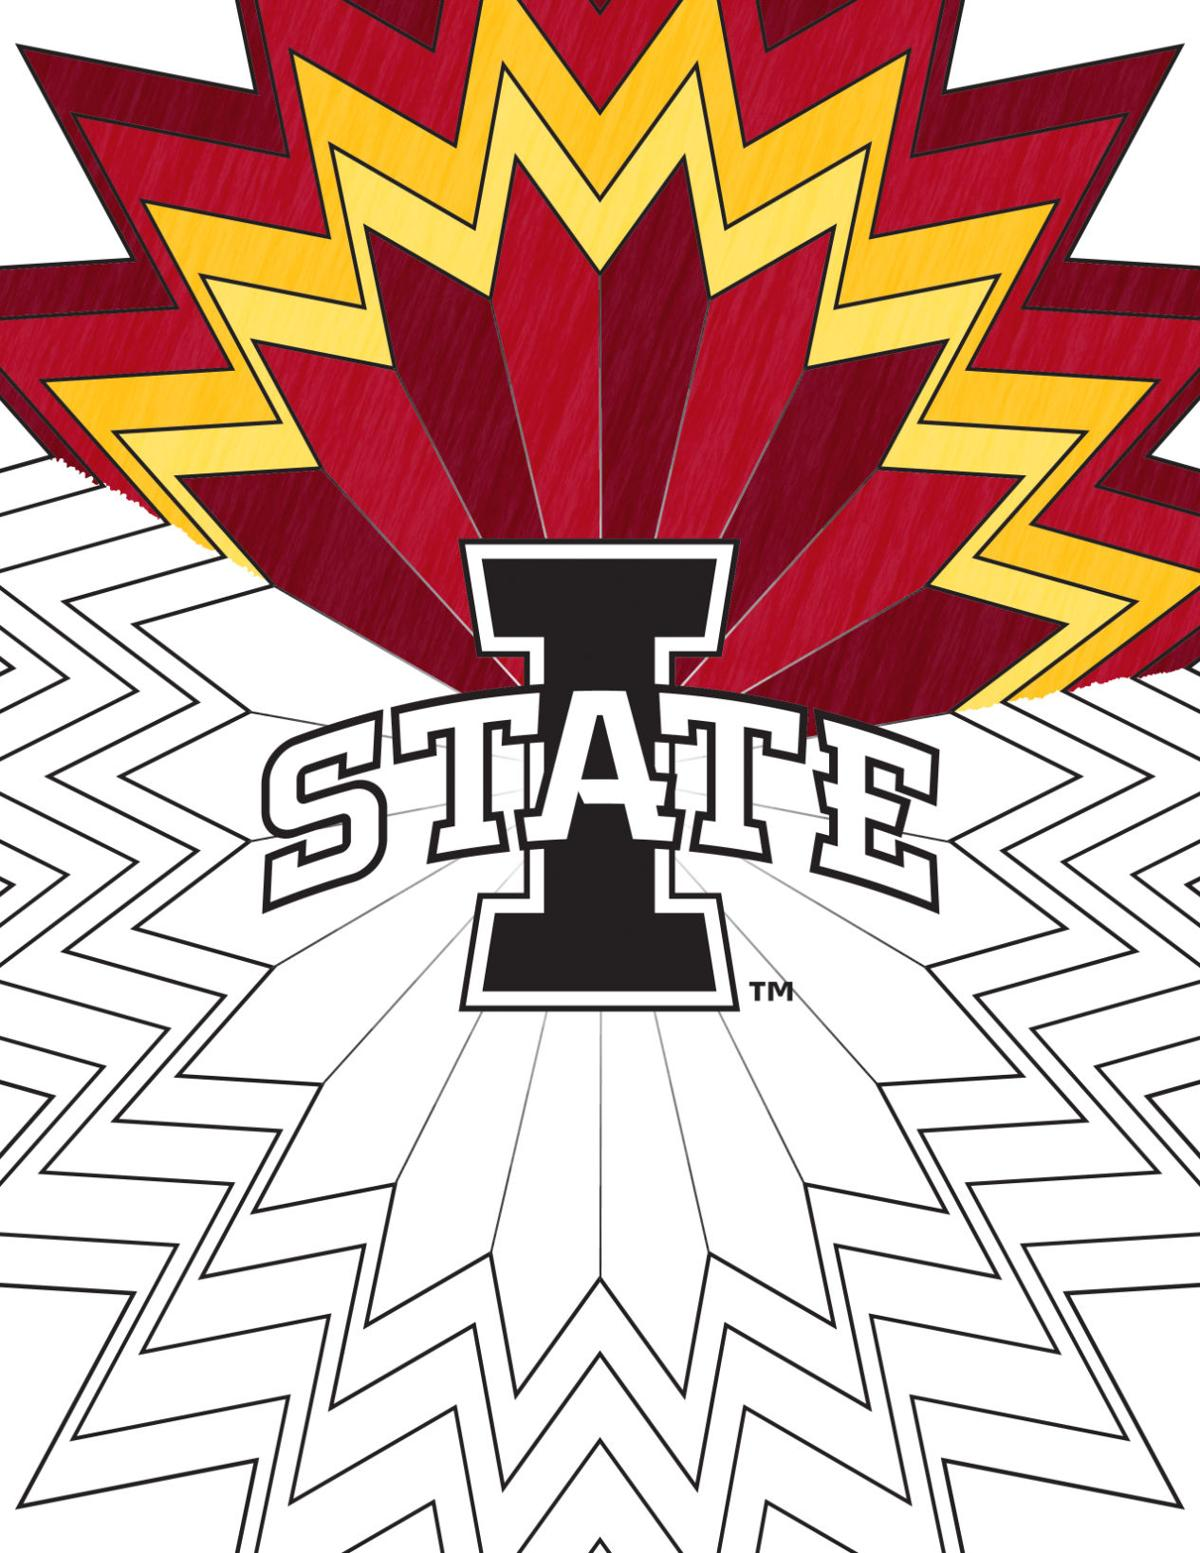 cyclone coloring pages relieve stress fun games iowastatedaily com